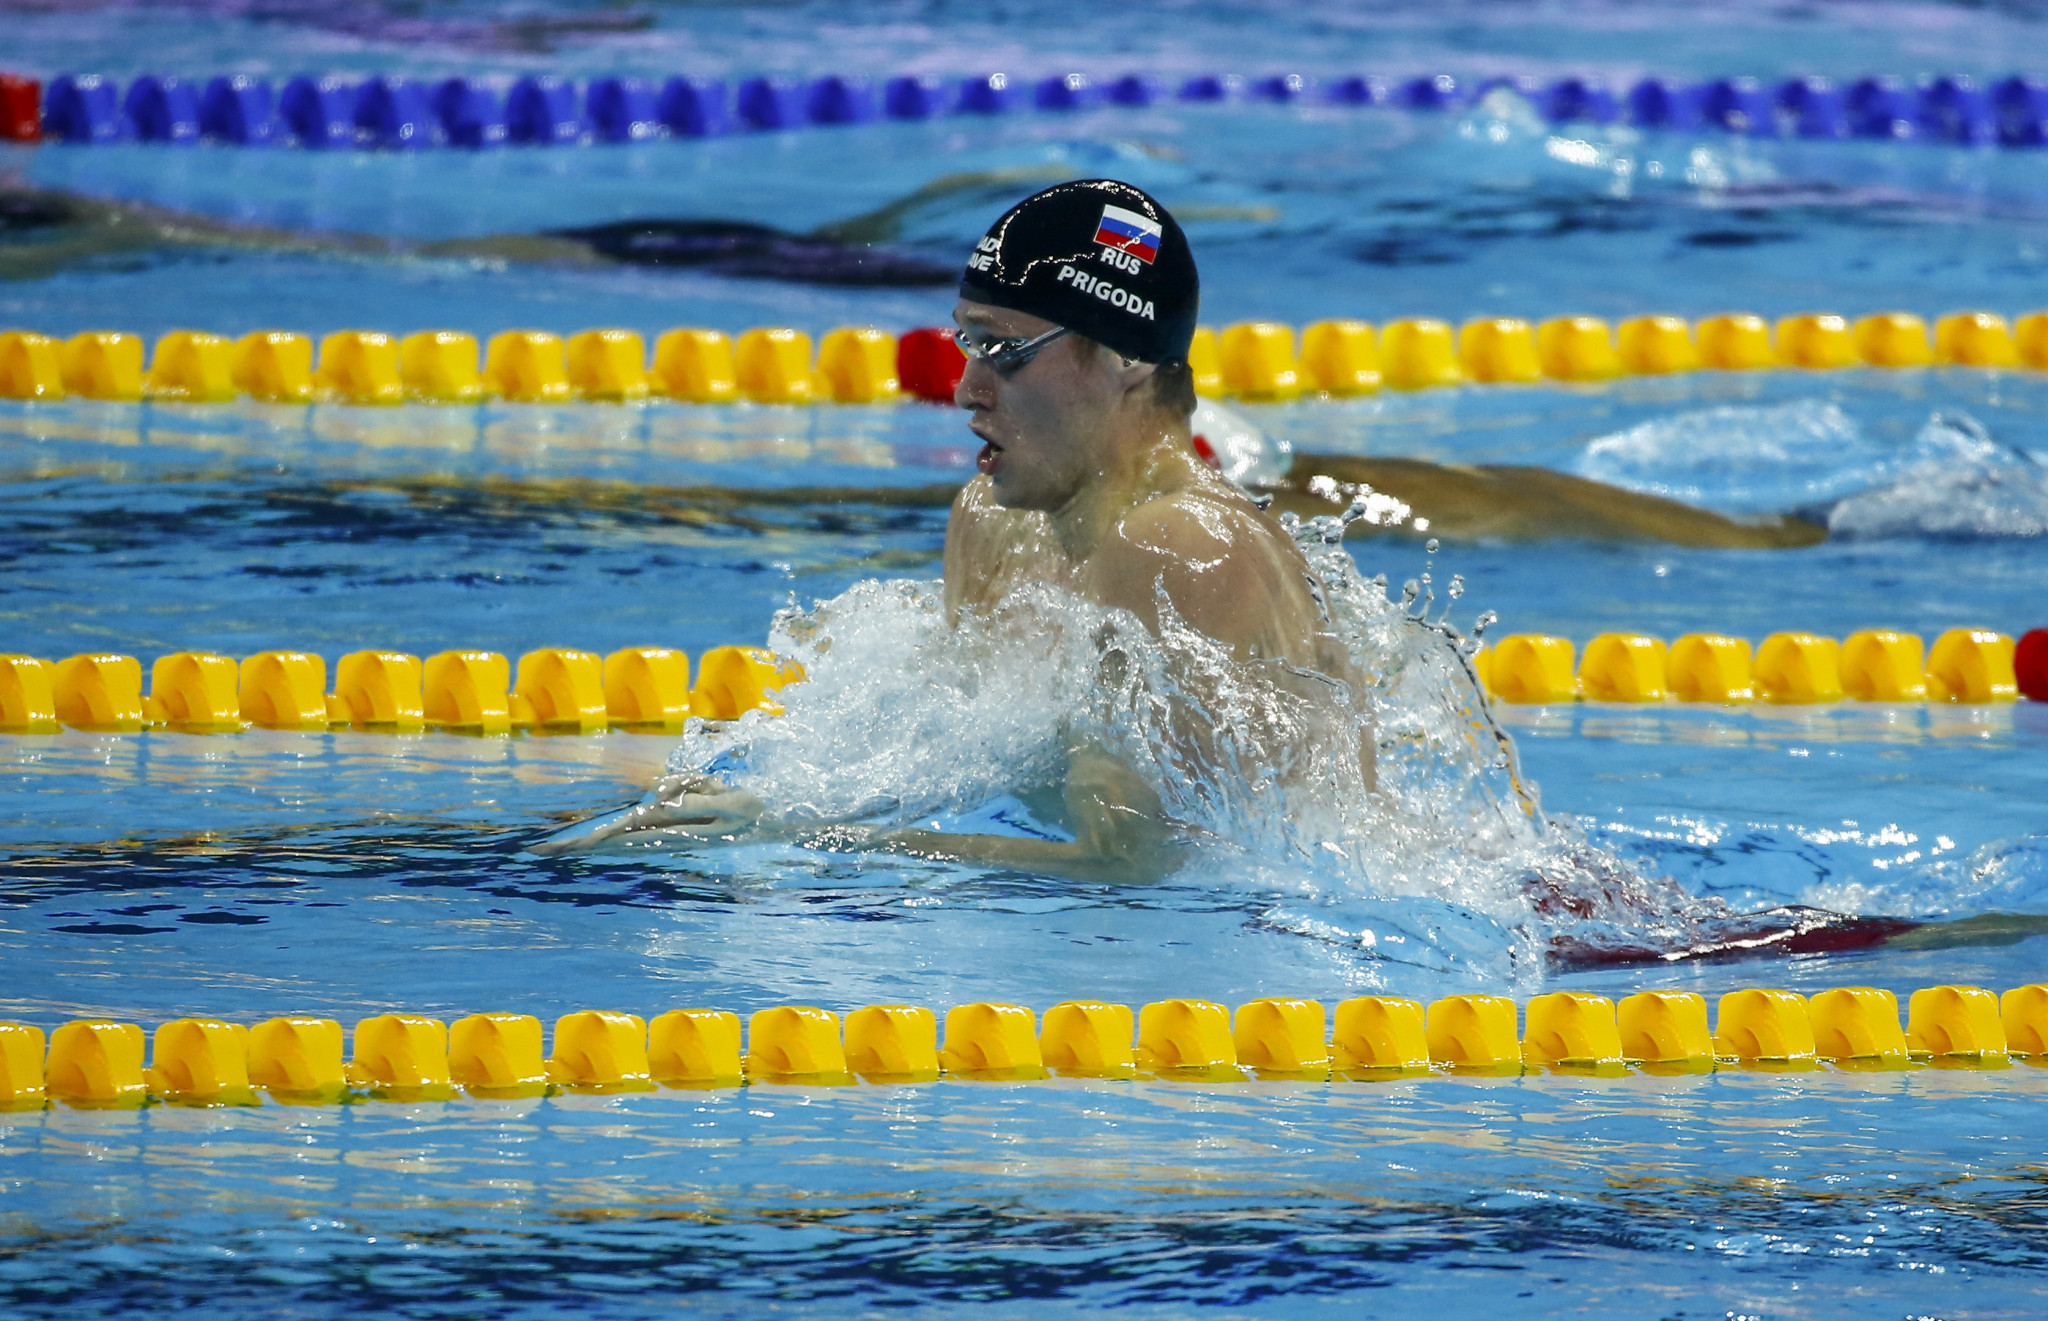 Prigoda stars with men's 200m breaststroke world record at FINA World Short Course Championships